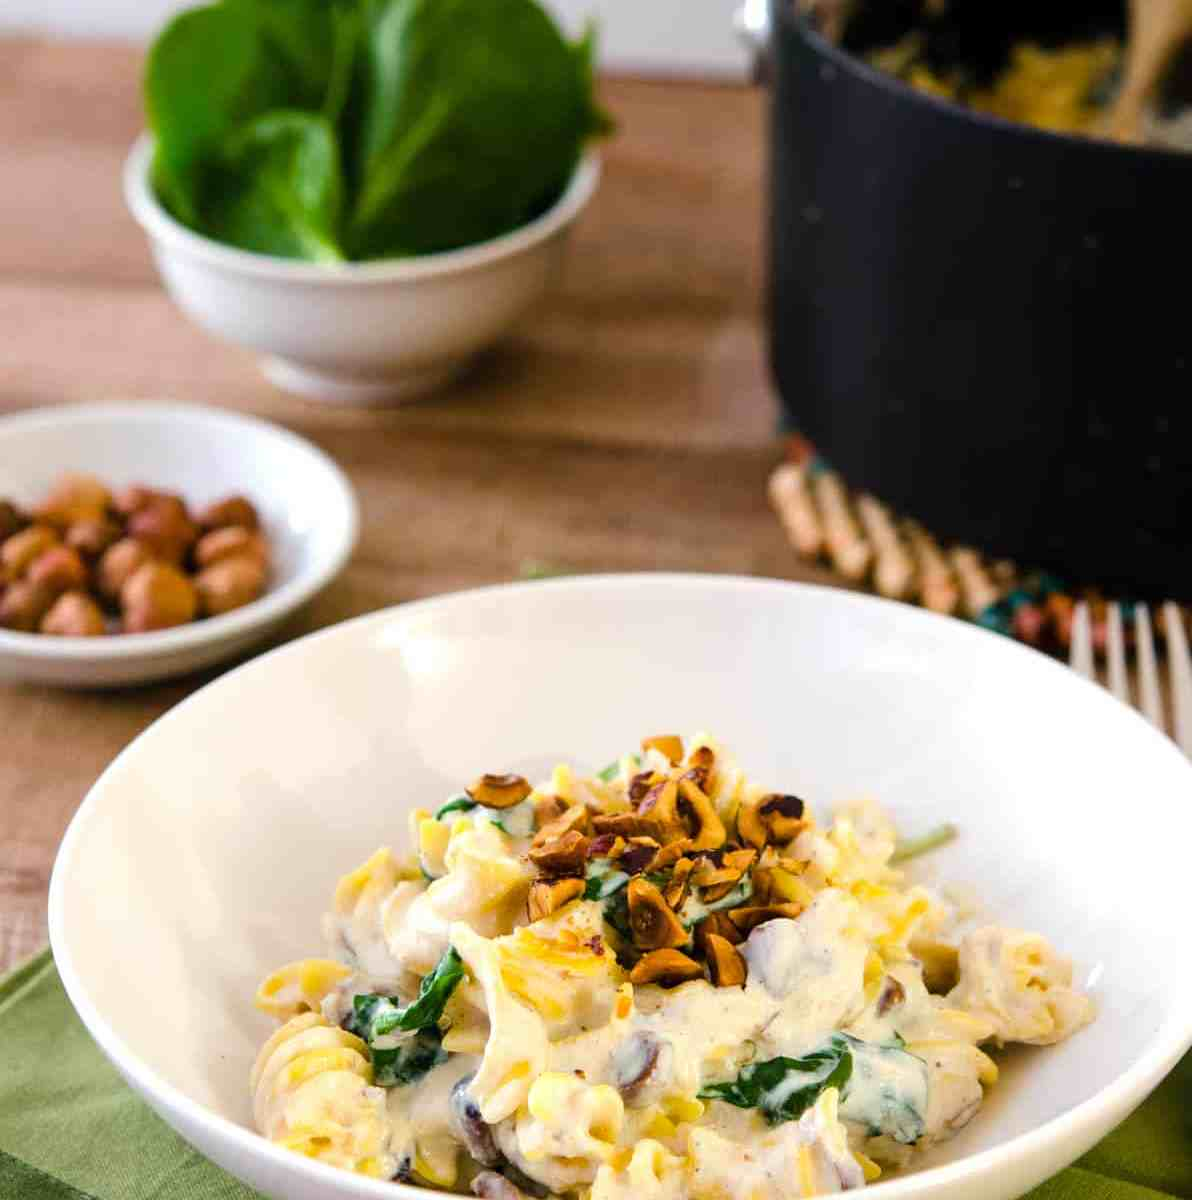 A low-fat, creamy garlic sauce over quinoa pasta, dotted with toasted hazelnuts. This delicious entree is impressive AND delicious!